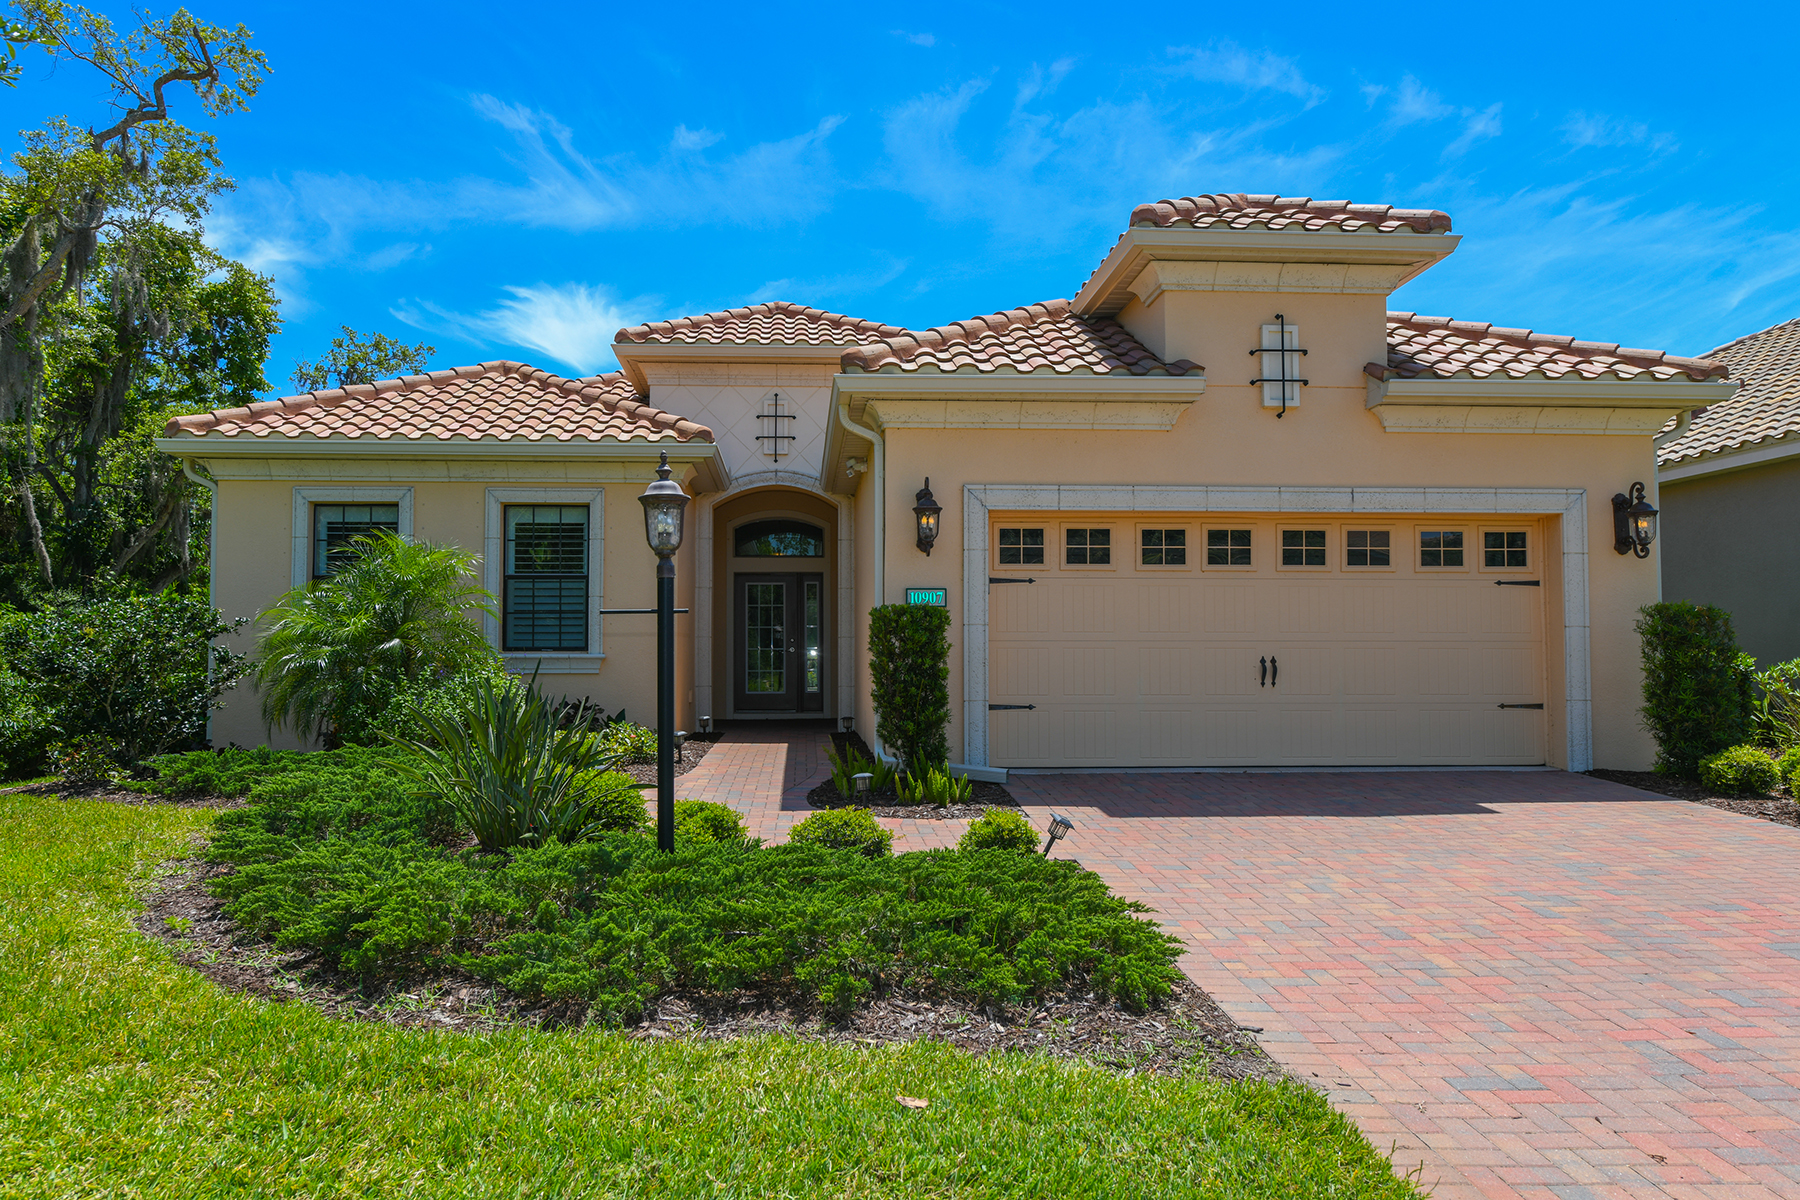 Single Family Homes for Sale at BOCA ROYALE GOLF & COUNTRY CLUB 10907 Trophy Dr, Englewood, Florida 34223 United States